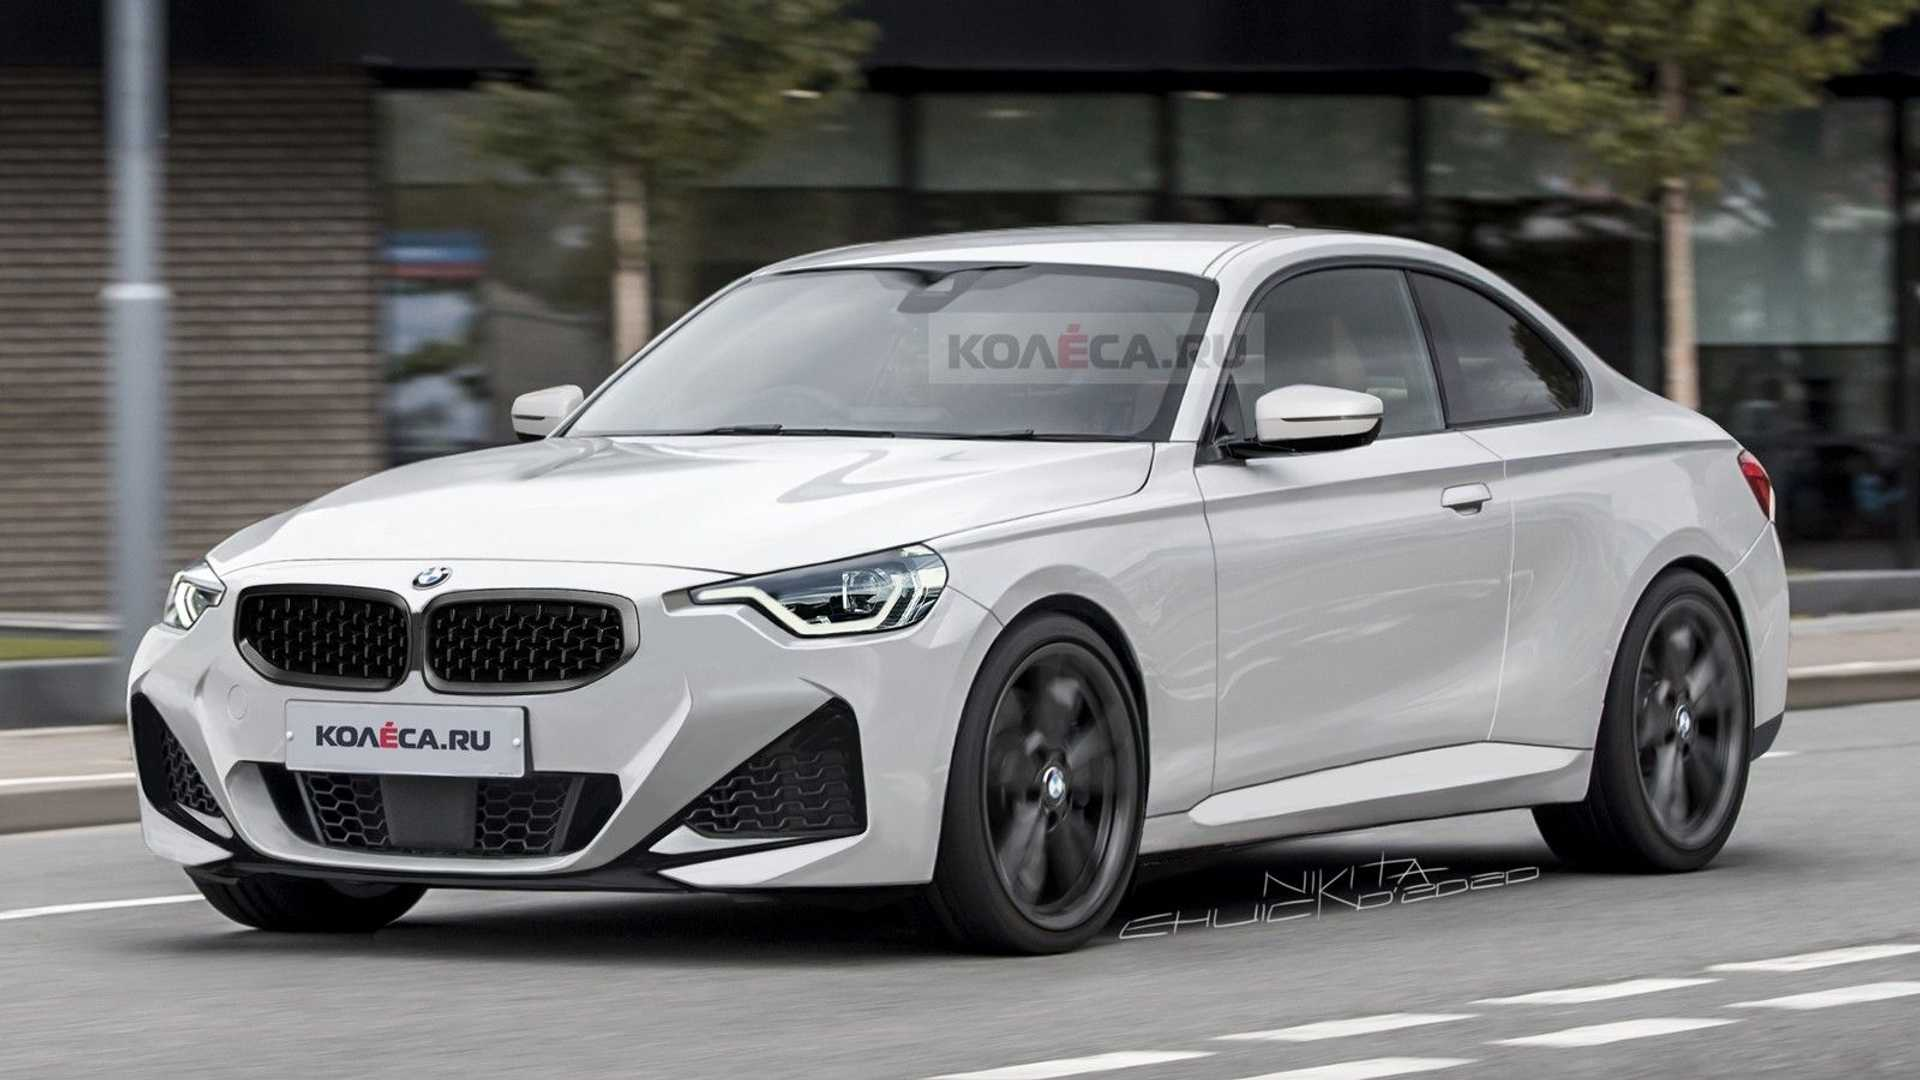 2022 BMW 2 Series Coupe Leaked Photos Turned Into Realistic Rendering - Motor1